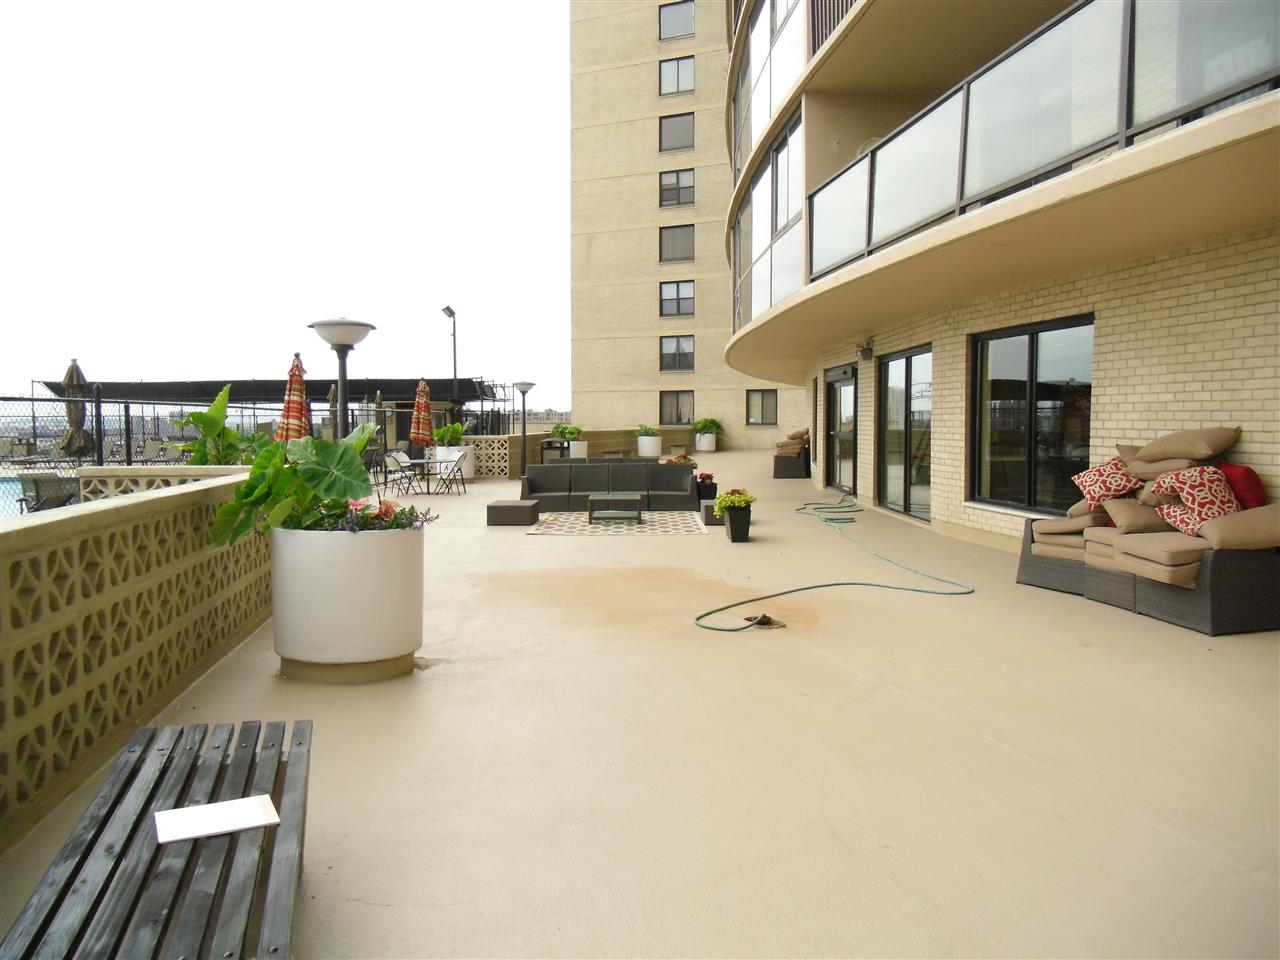 troy towers condos for sale and rent - hobokennj